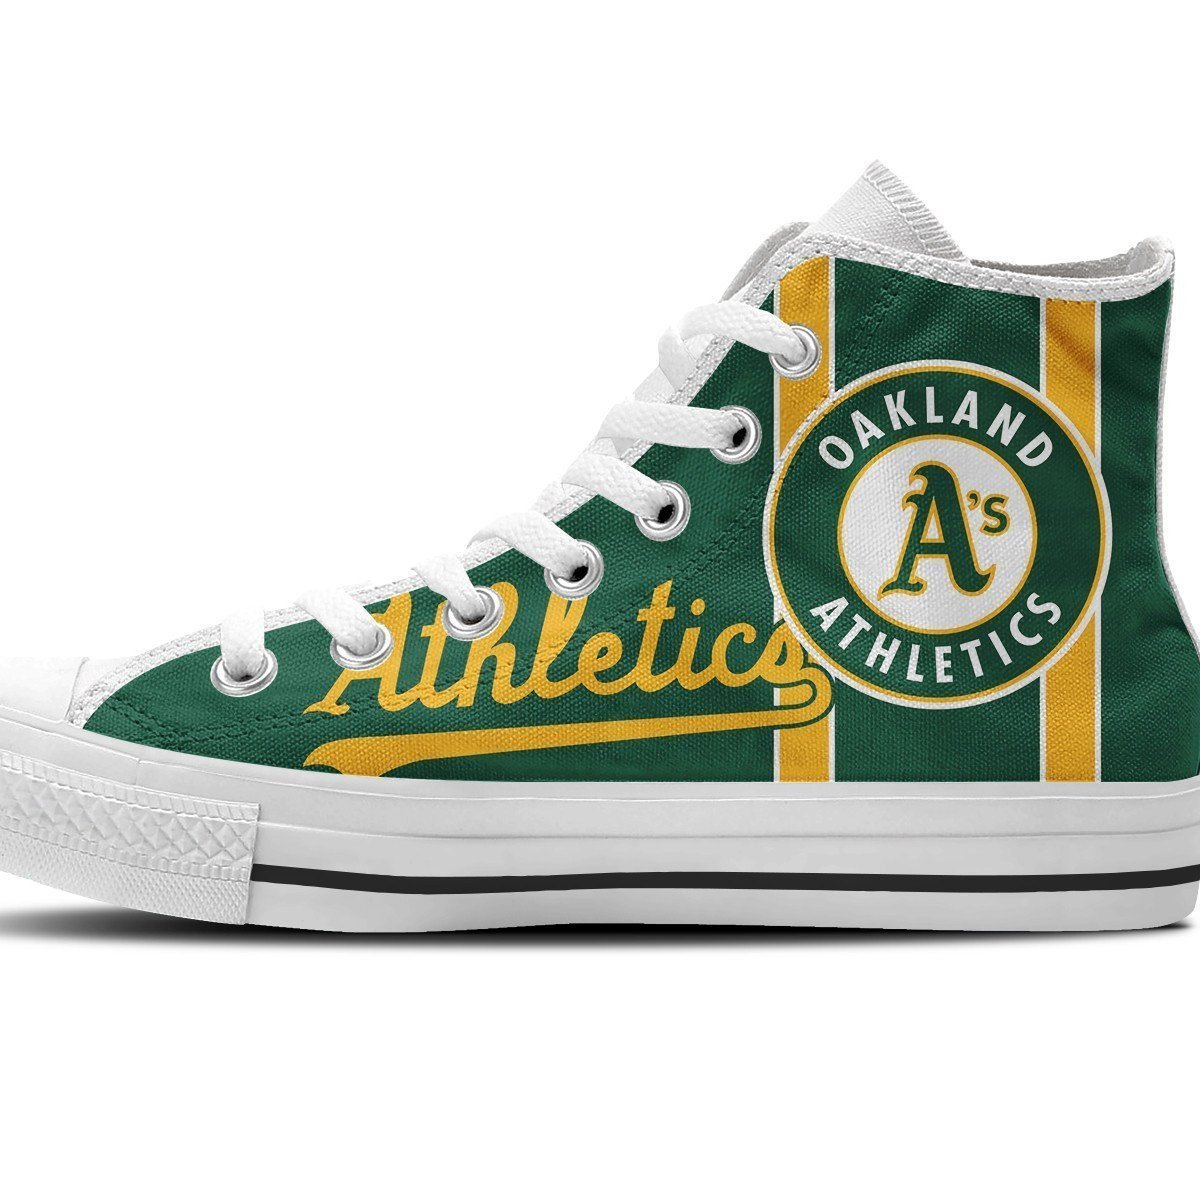 oakland athletics mens high top sneakers